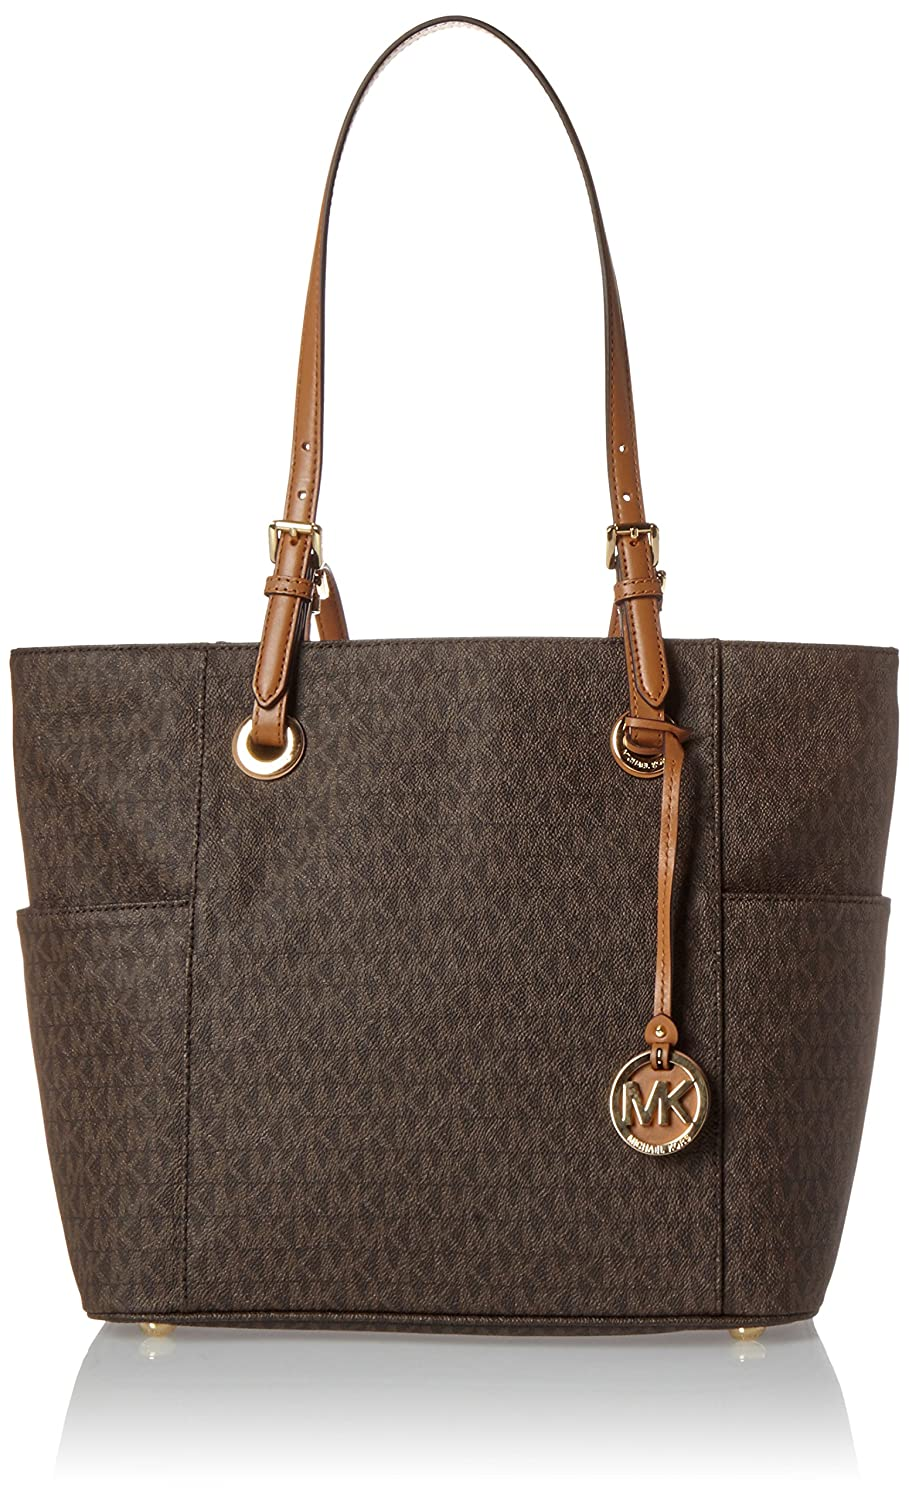 Michael Kors - Jet Set Item, Bolsos totes Mujer, Marrón (Brown), 13.3x27.3x39.4 cm (W x H L): Amazon.es: Zapatos y complementos